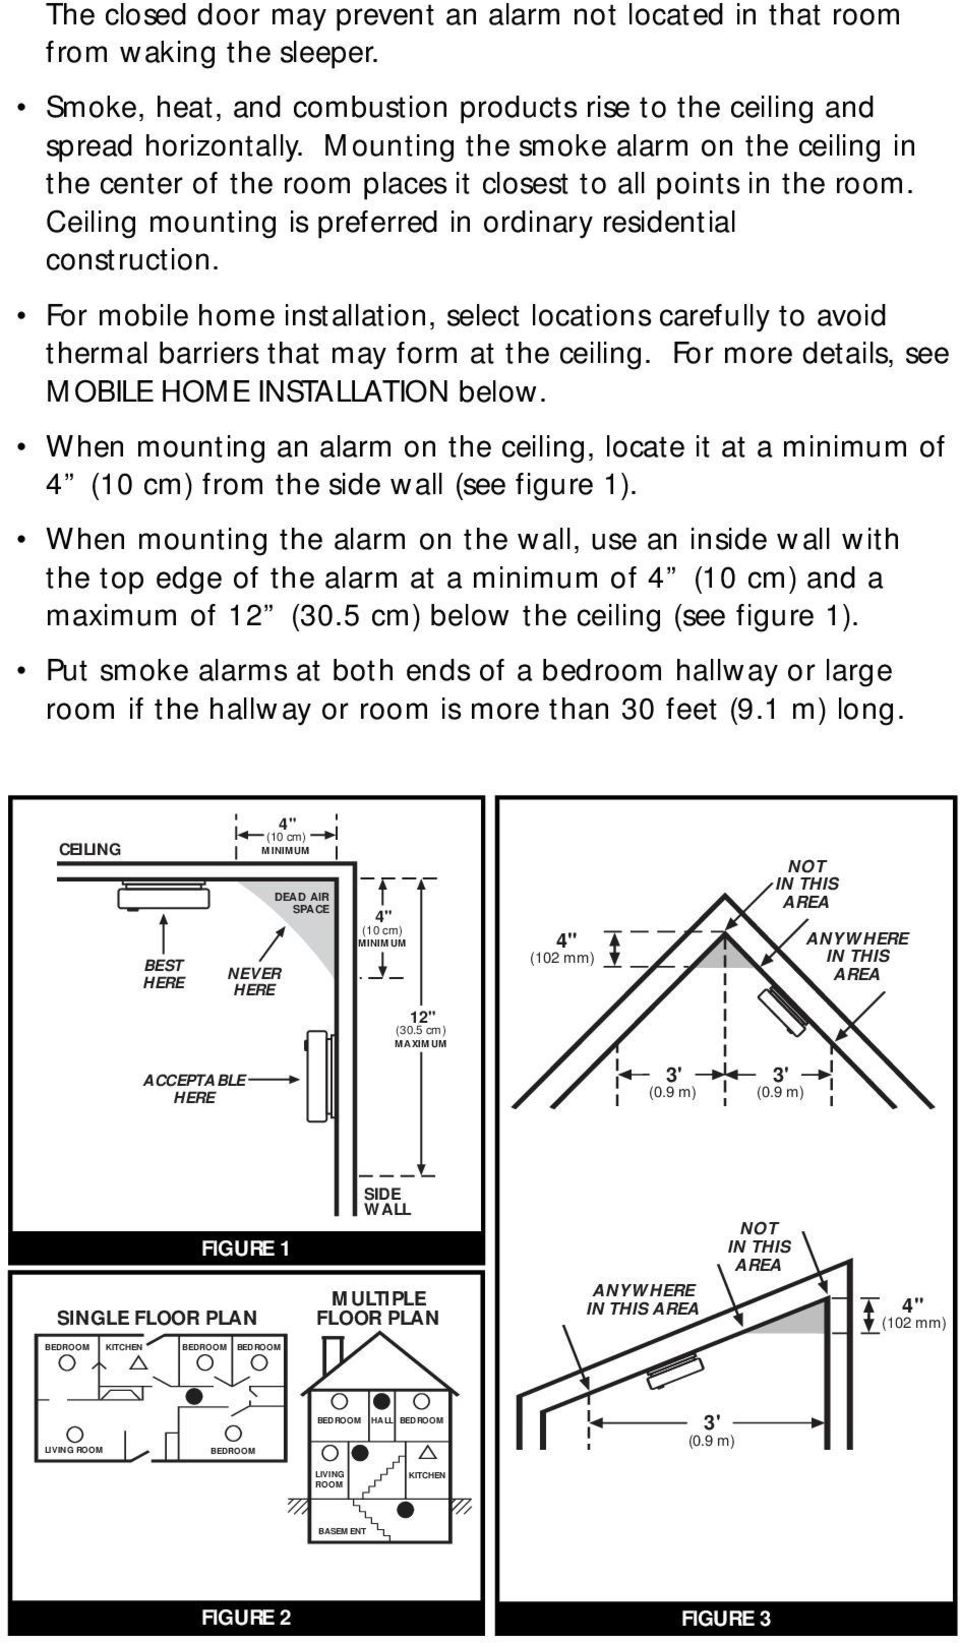 "ACCEPTABLE HERE Ceiling mounting is preferred in ordinary residential 4"" (10 cm) construction."